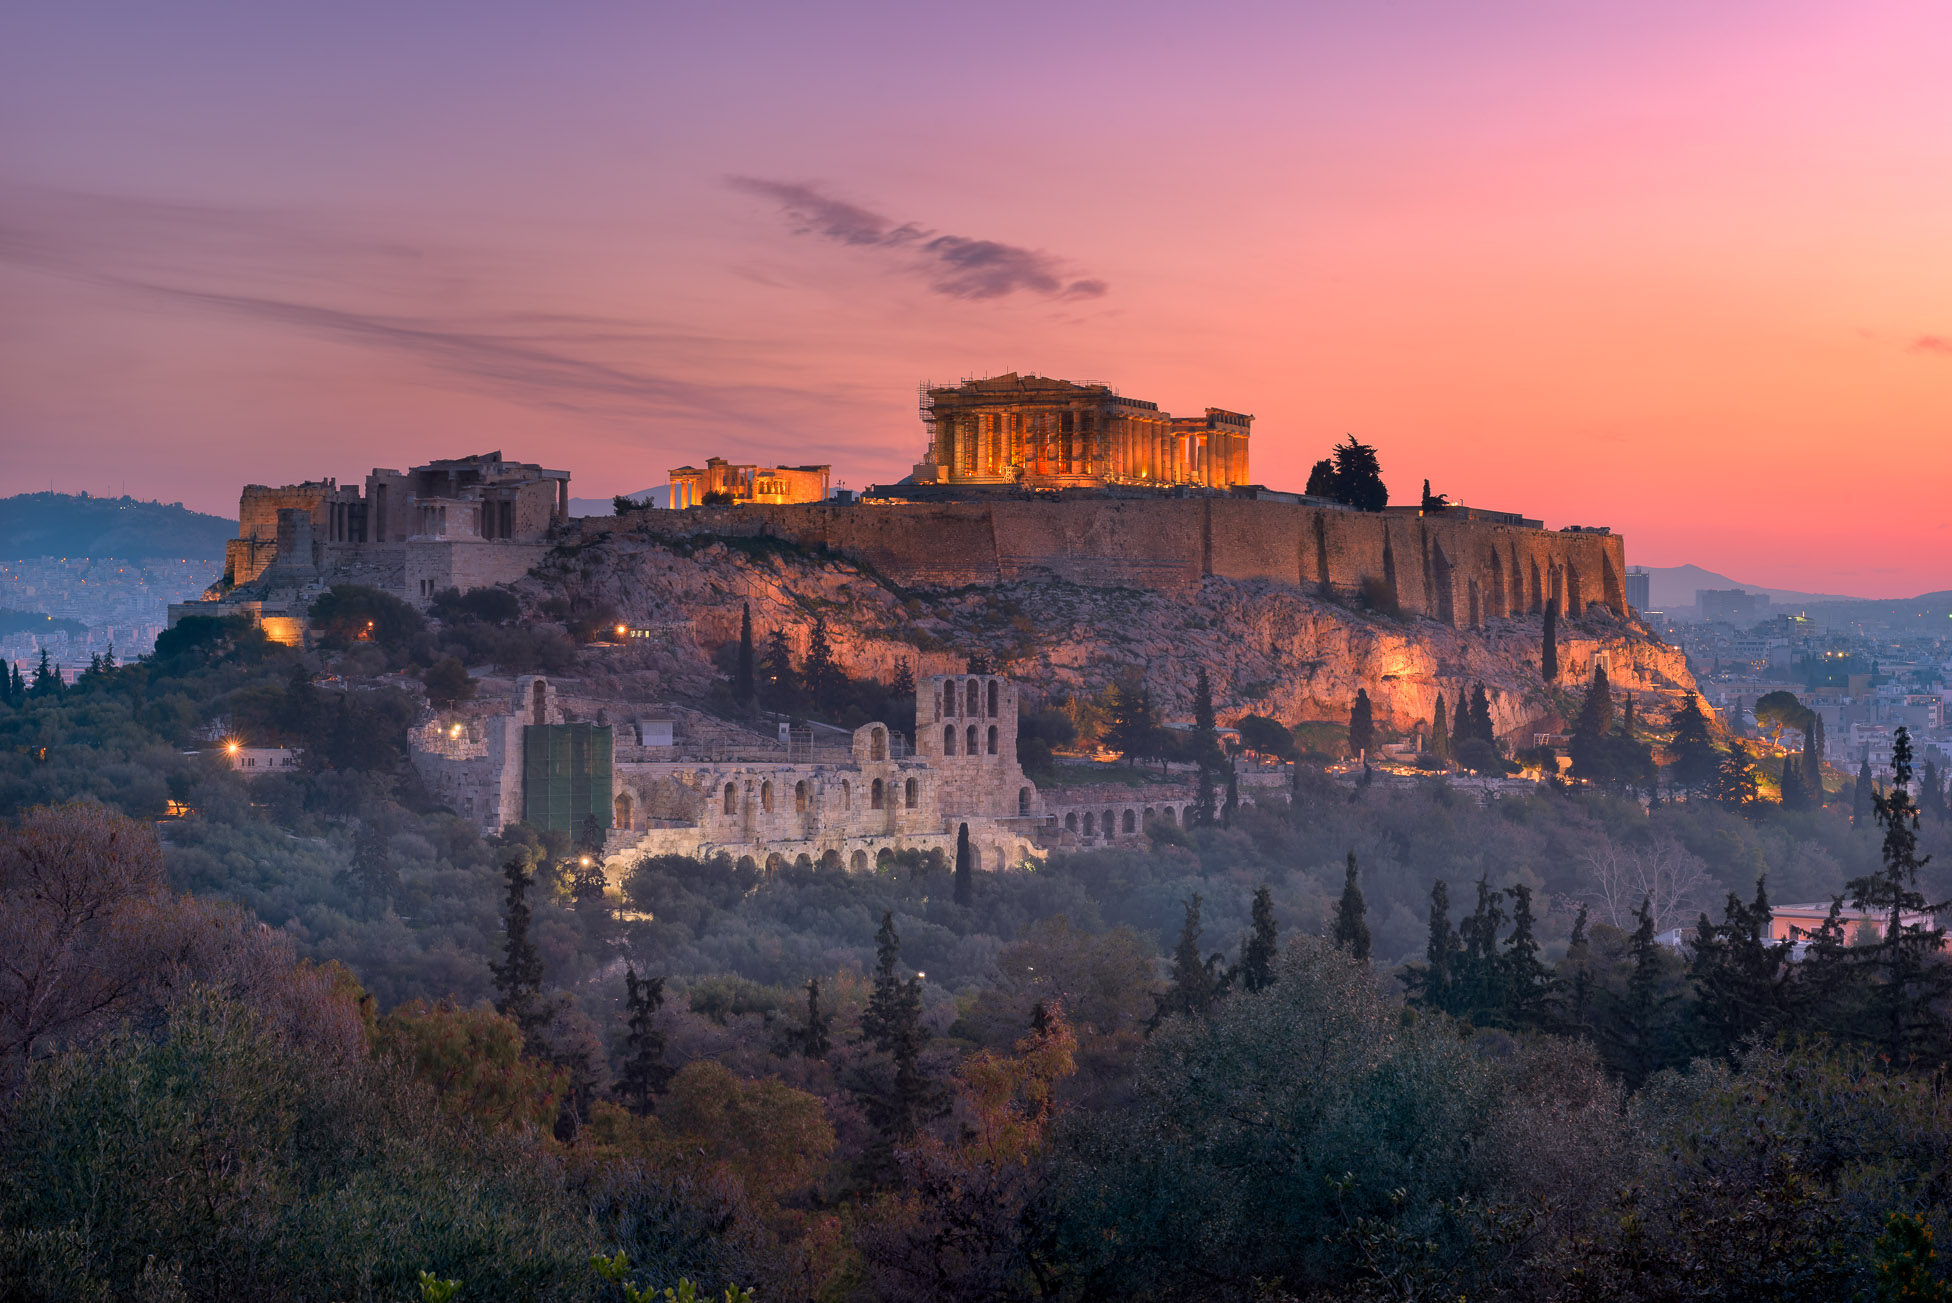 View of Acropolis from the Philopappos Hill in the Morning, Athens, Greece